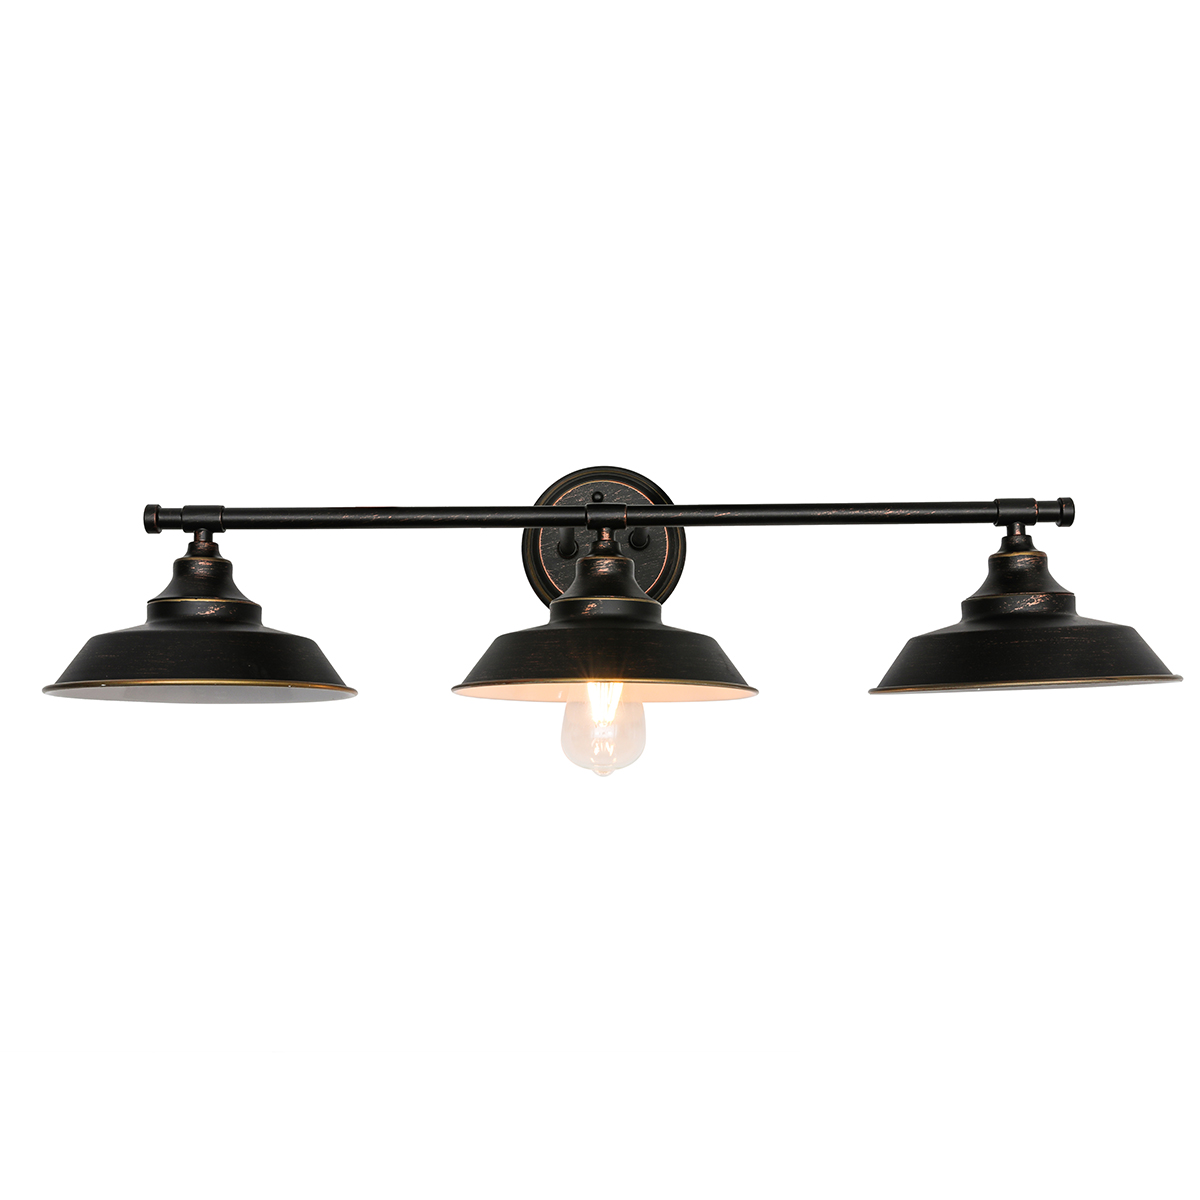 Industrial Wall Sconces Left BAYCHEER Vintage Creative Hand Shaped Wall Lamp Wall Light Fixtures with UL Listed Bulb Socket for Bedroom Kitchen Restaurant Cafe Bar LOFT Warehouse